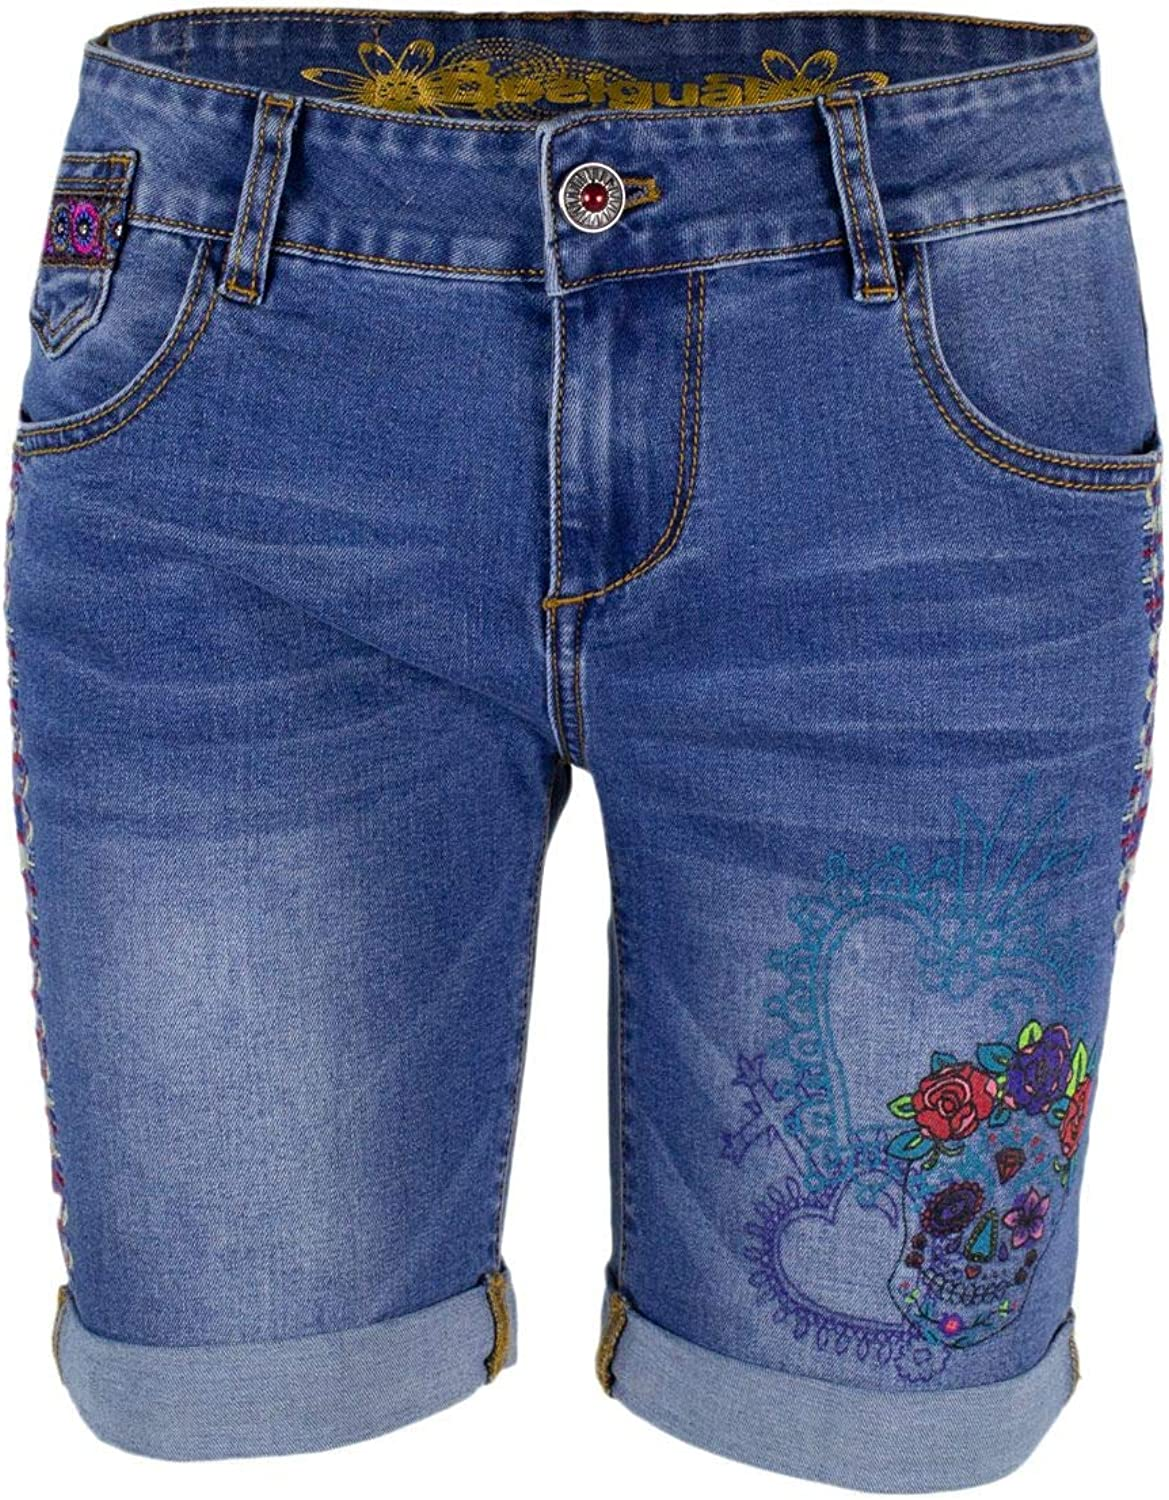 Desigual Women's 19SWDD12blueE bluee Cotton Shorts